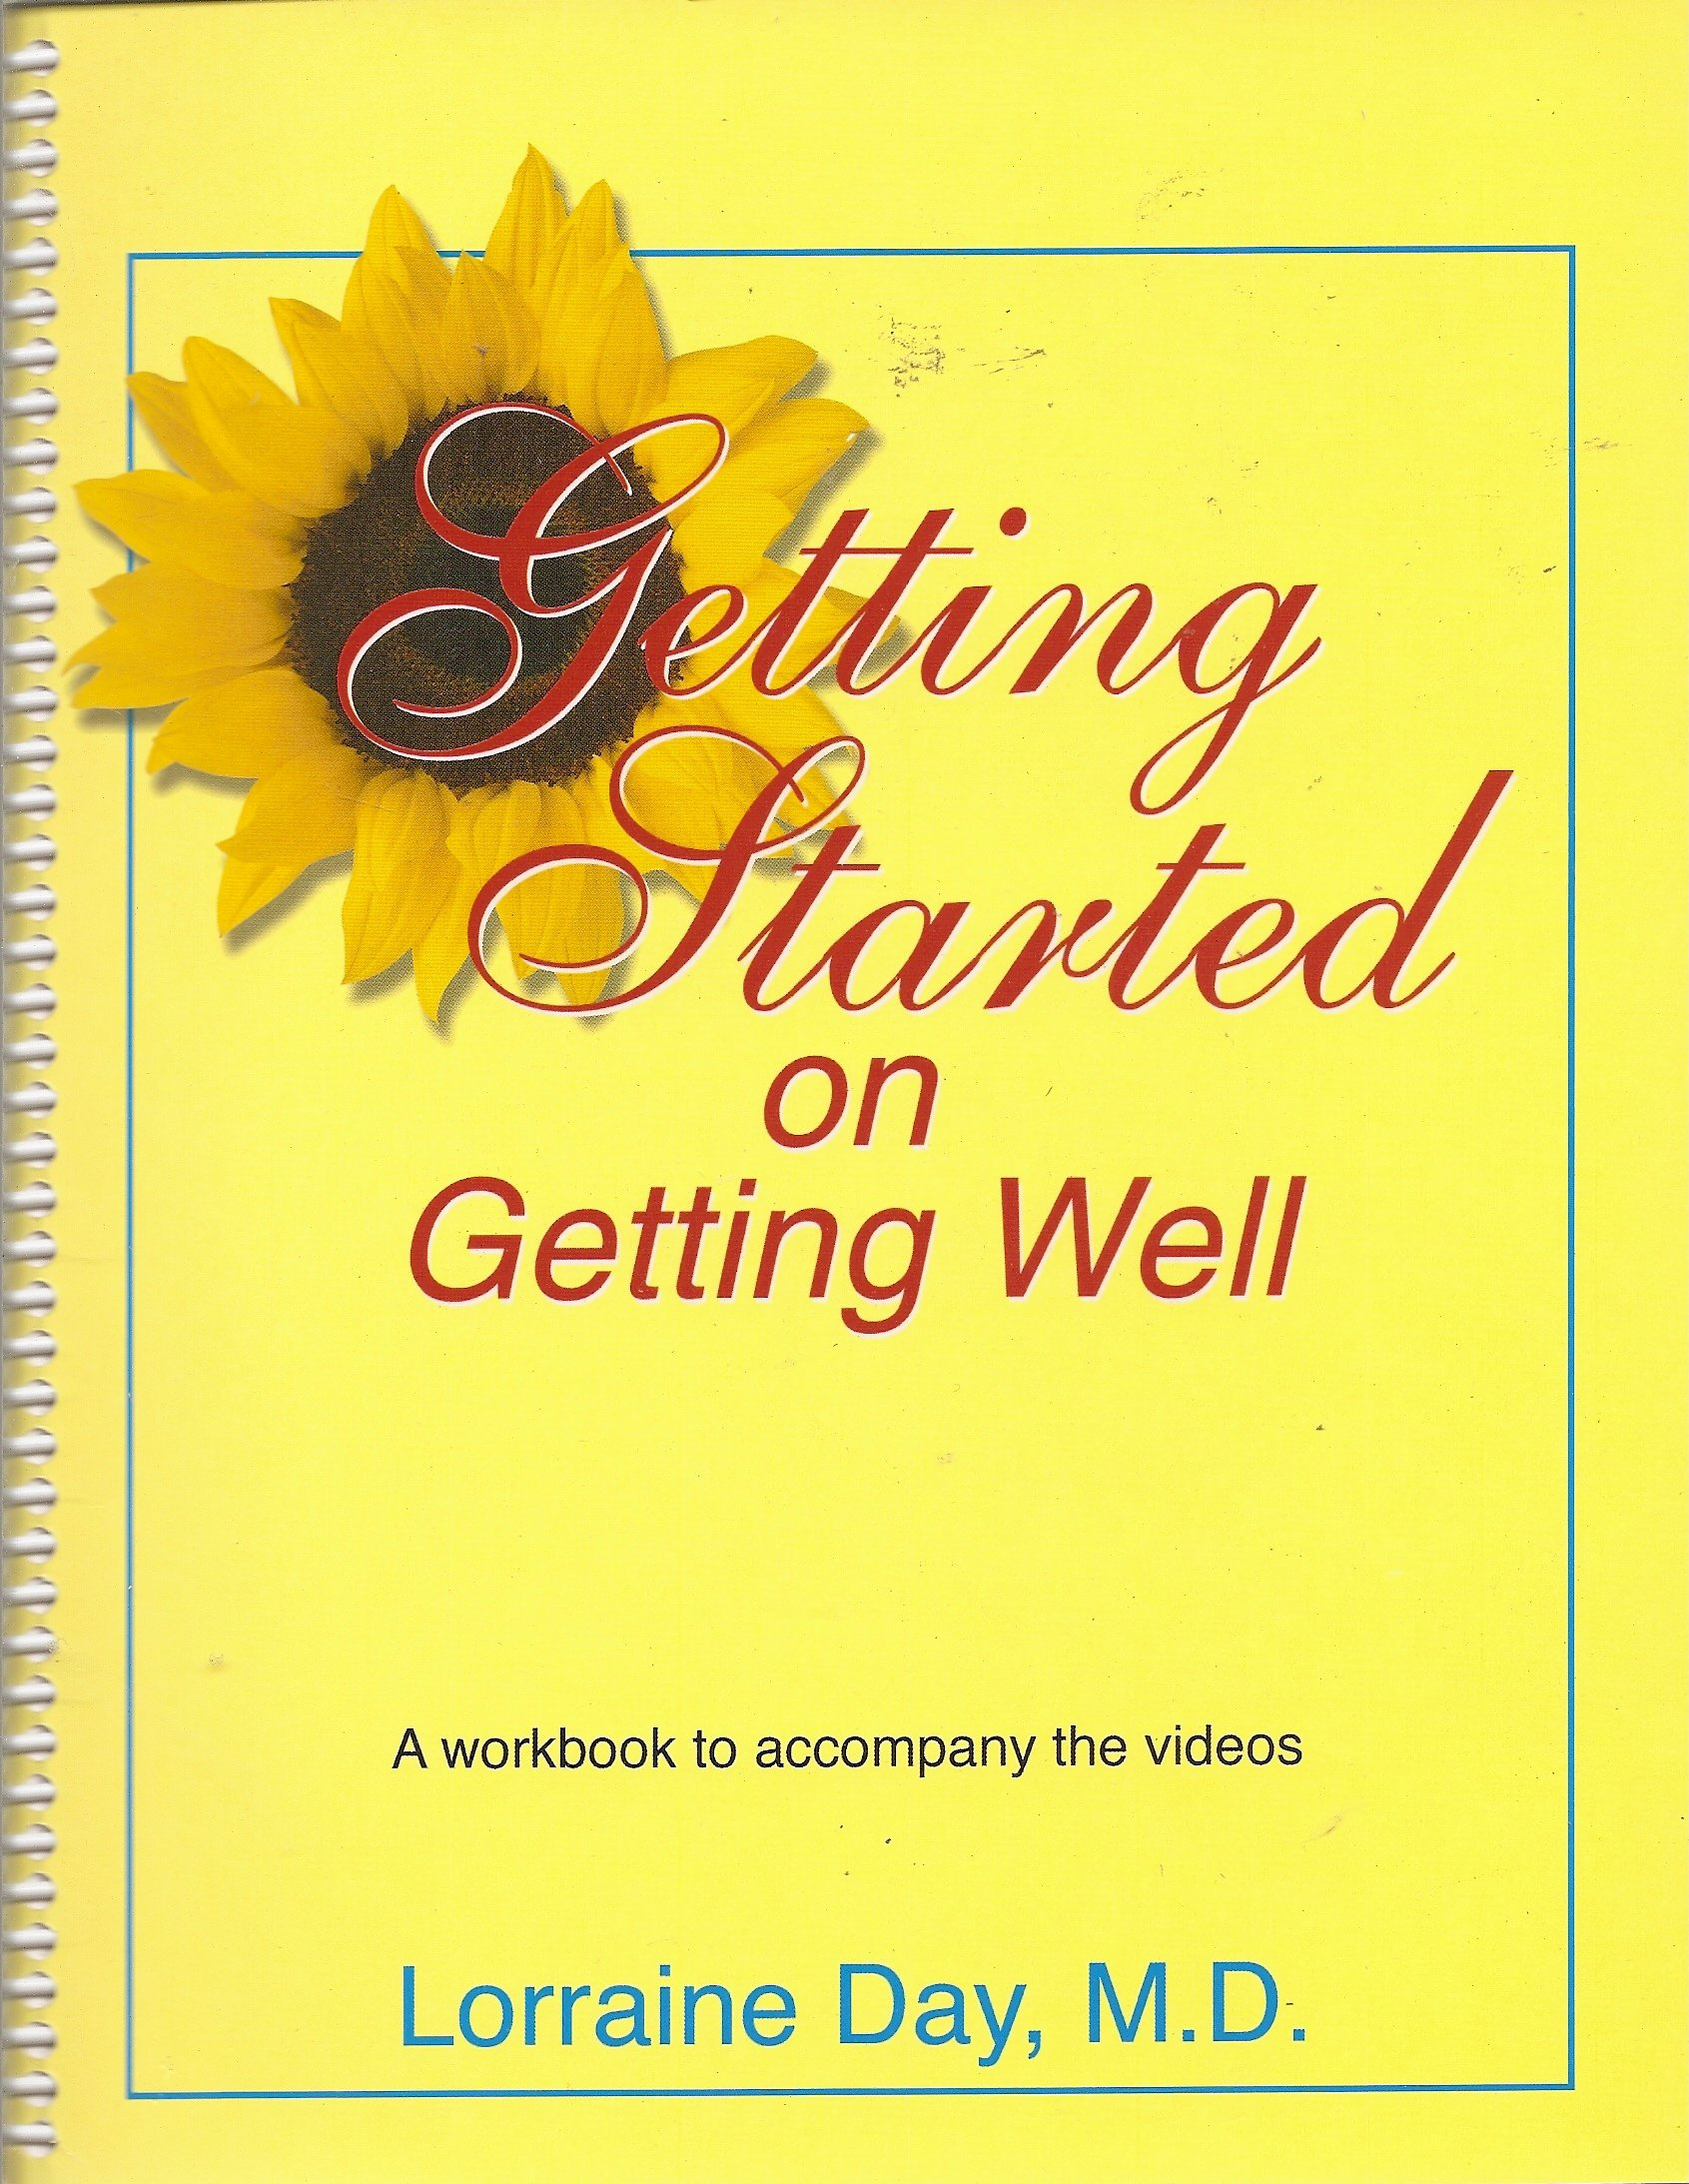 Getting Started on Getting Well: A Workbook to Accompany the Videos